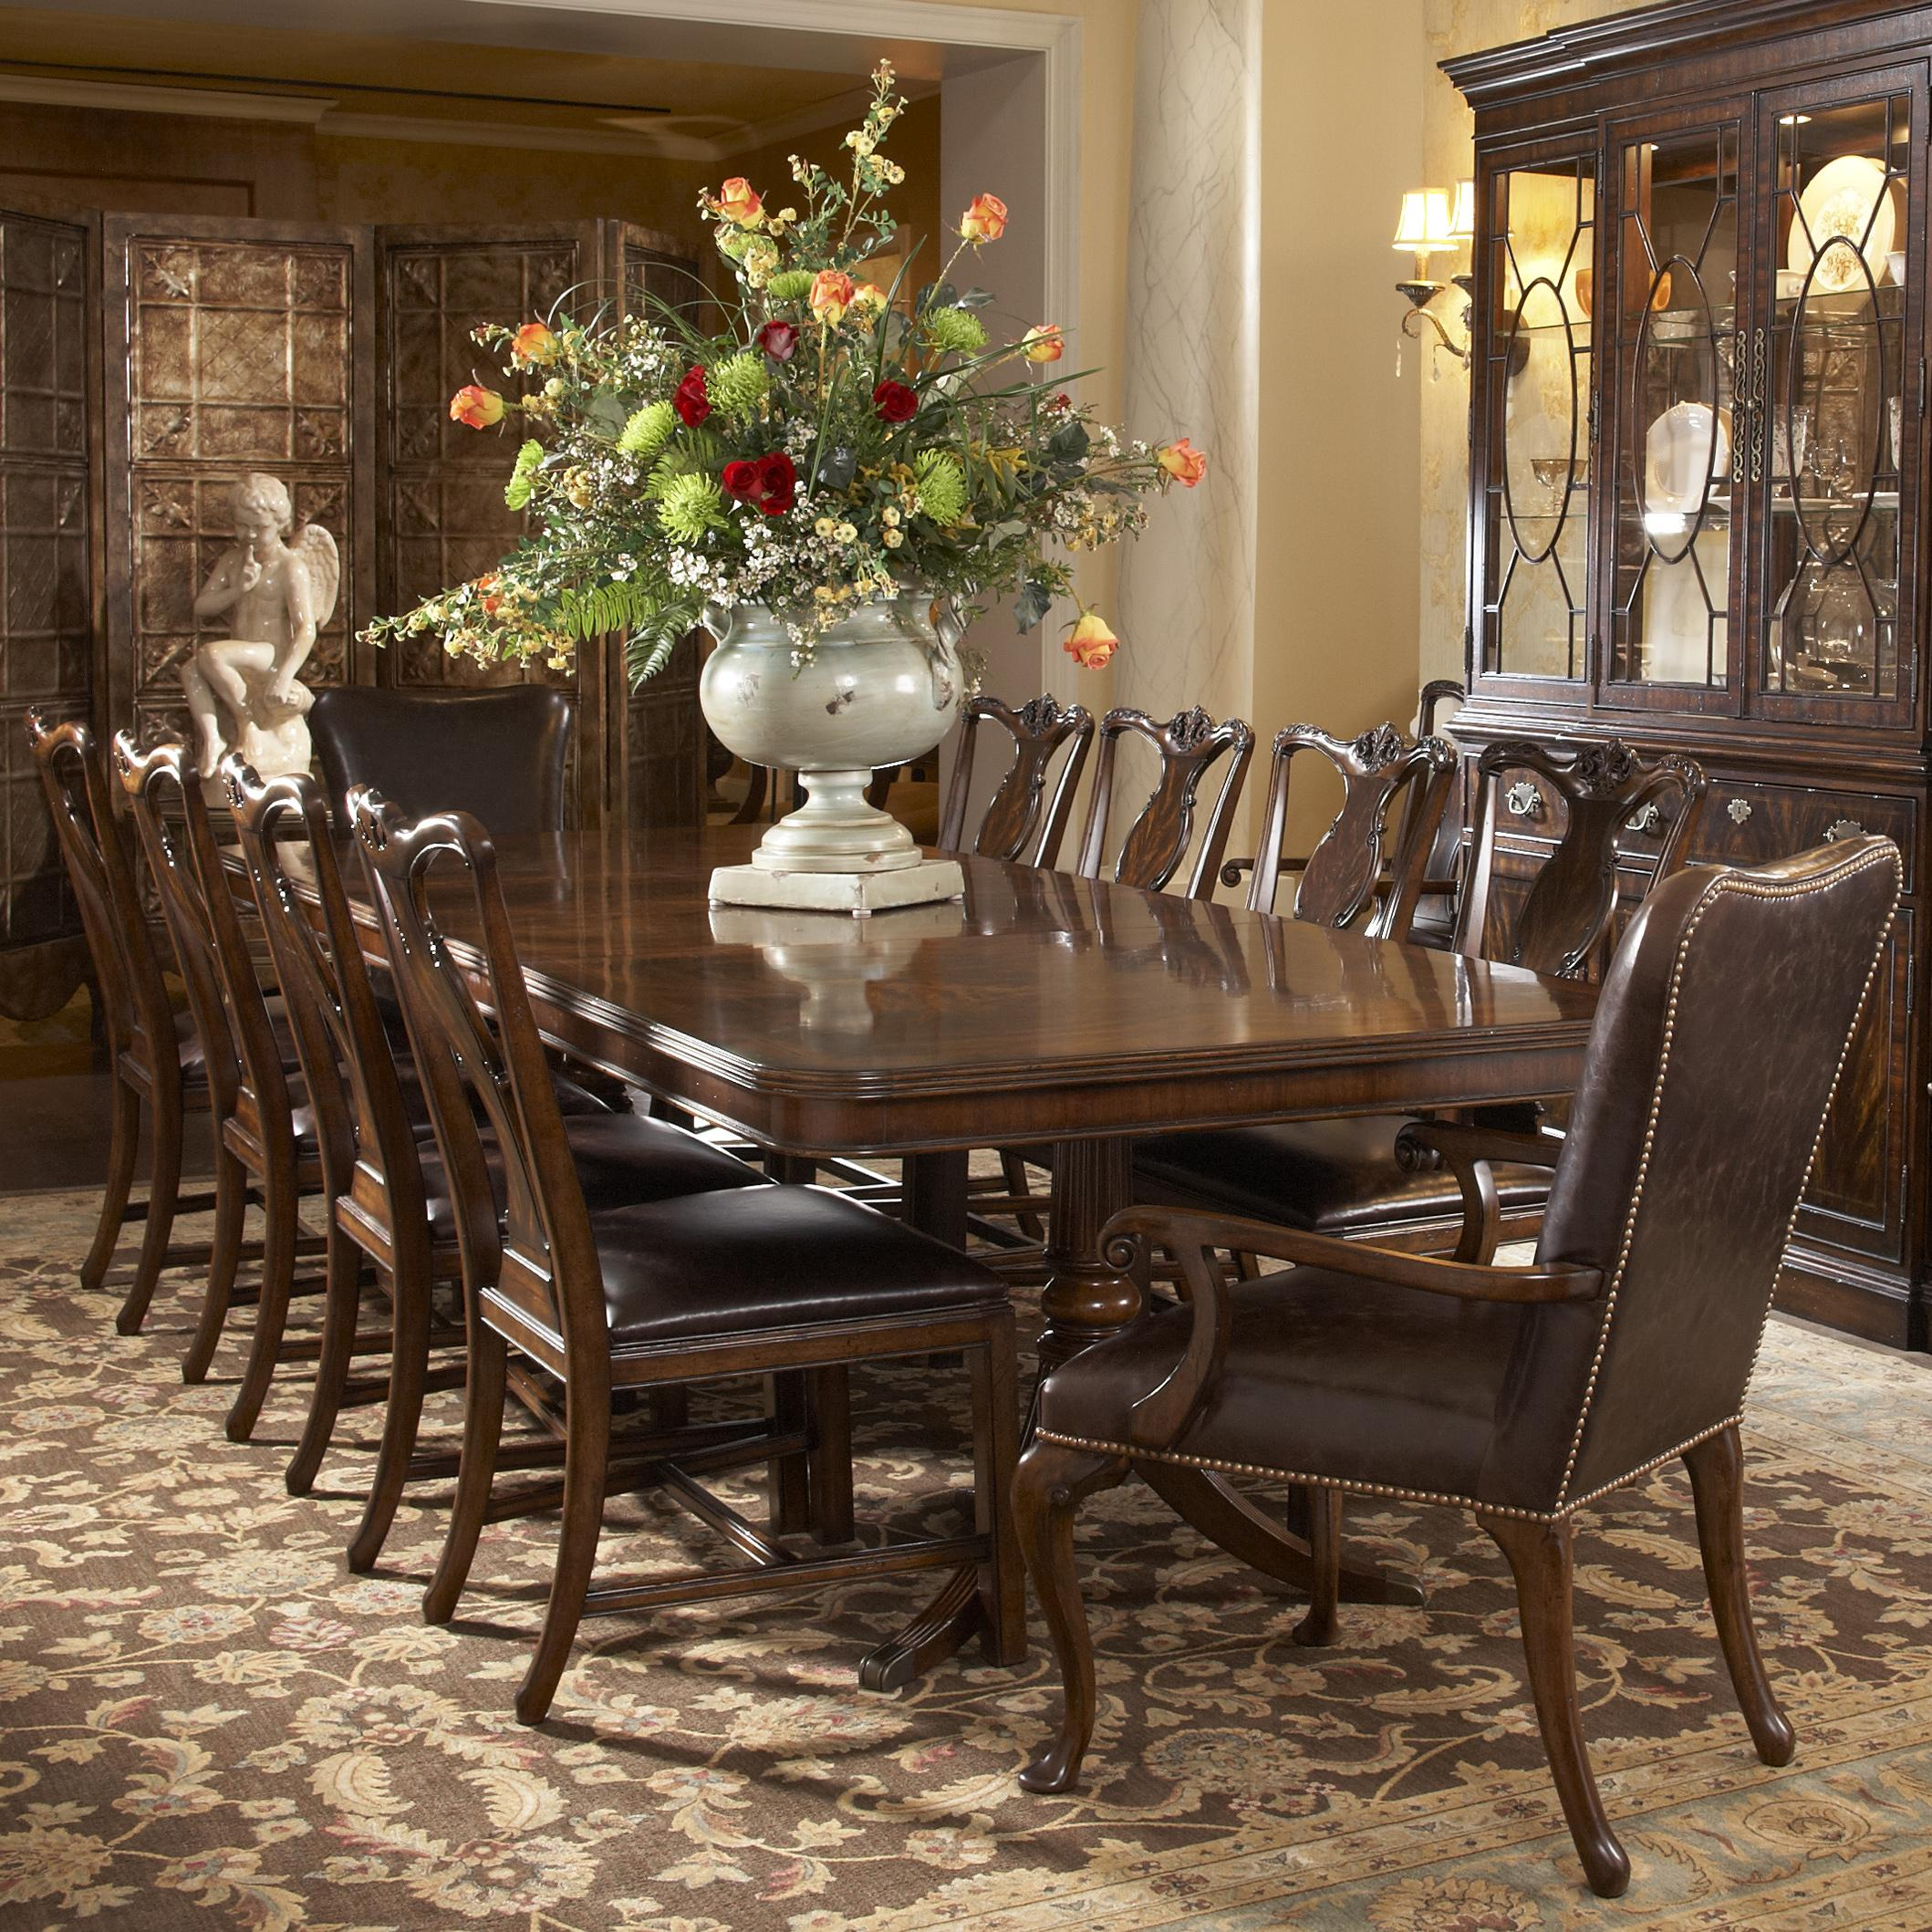 11 Piece Double Pedestal Dining Table And Splat Back Side Chair With  Leather Upholstered Arm Chairs Part 42